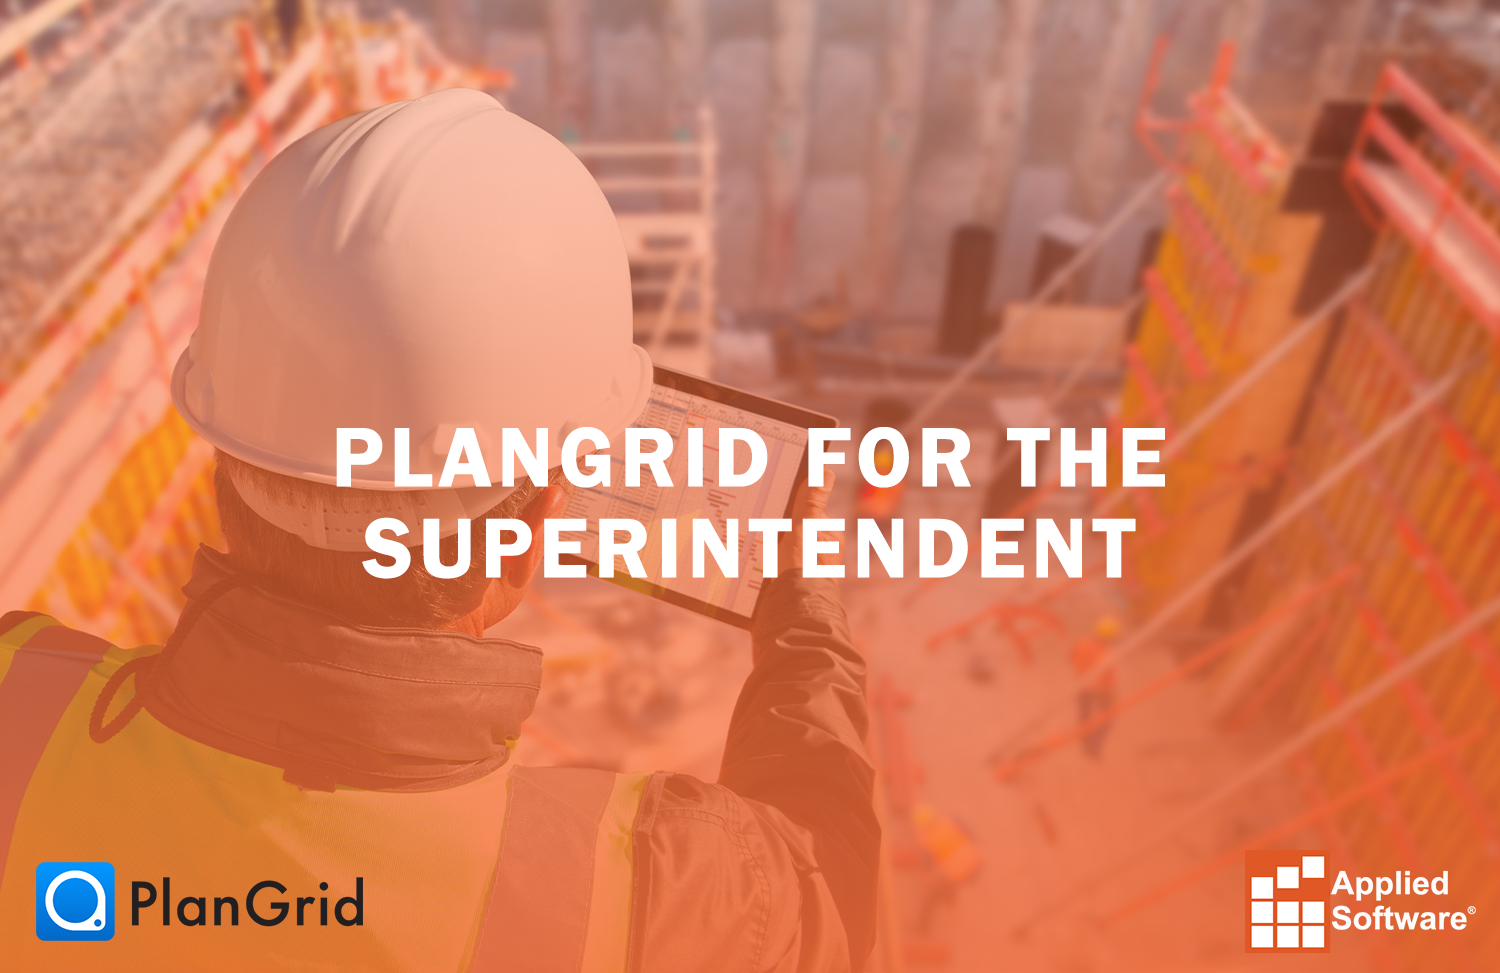 PlanGrid for the Superintendent